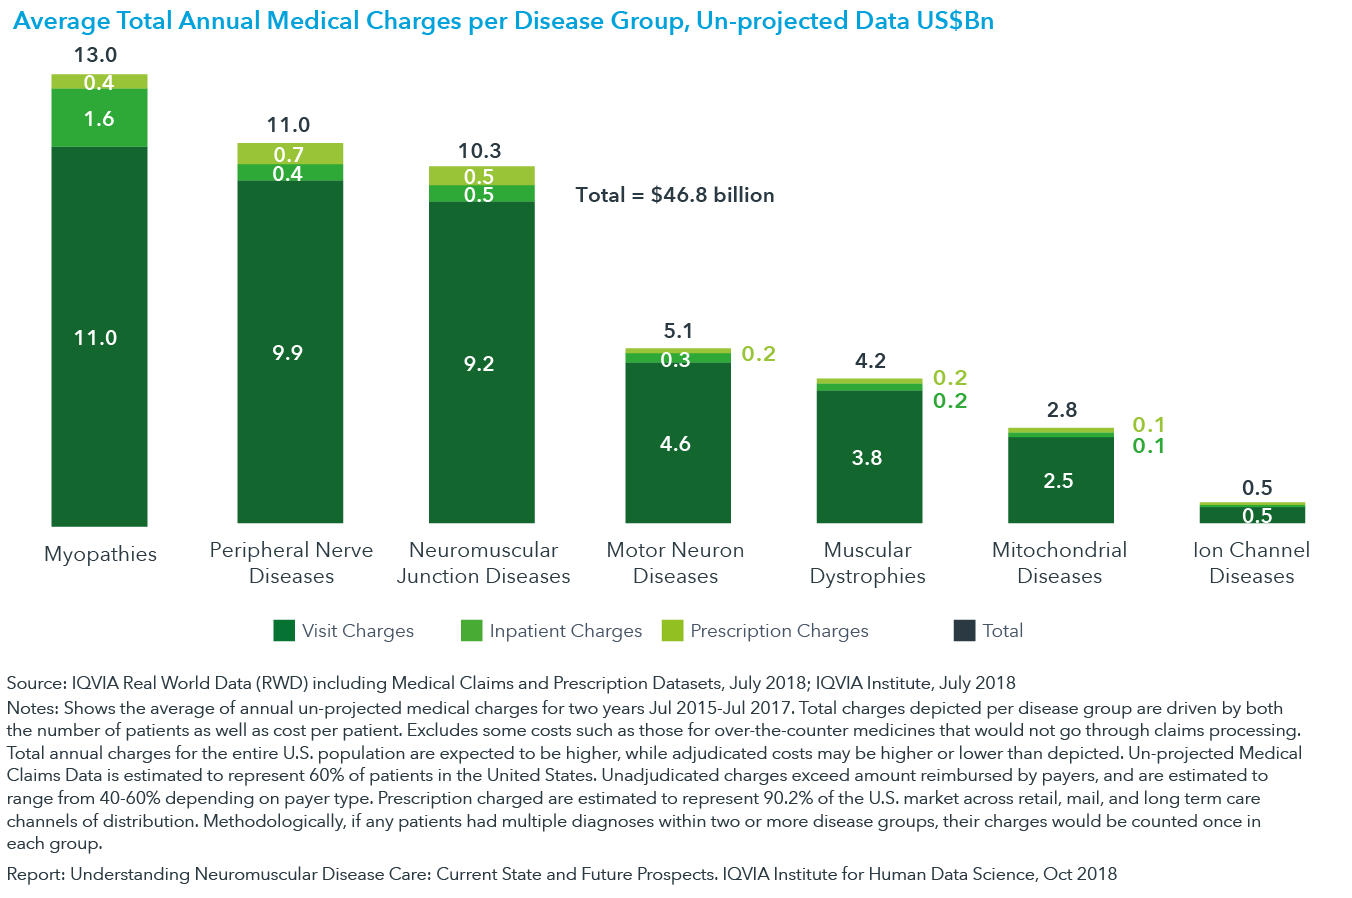 Chart 4: Average Total Annual Medical Charges per Disease Group, Un-projected Data US$Bn